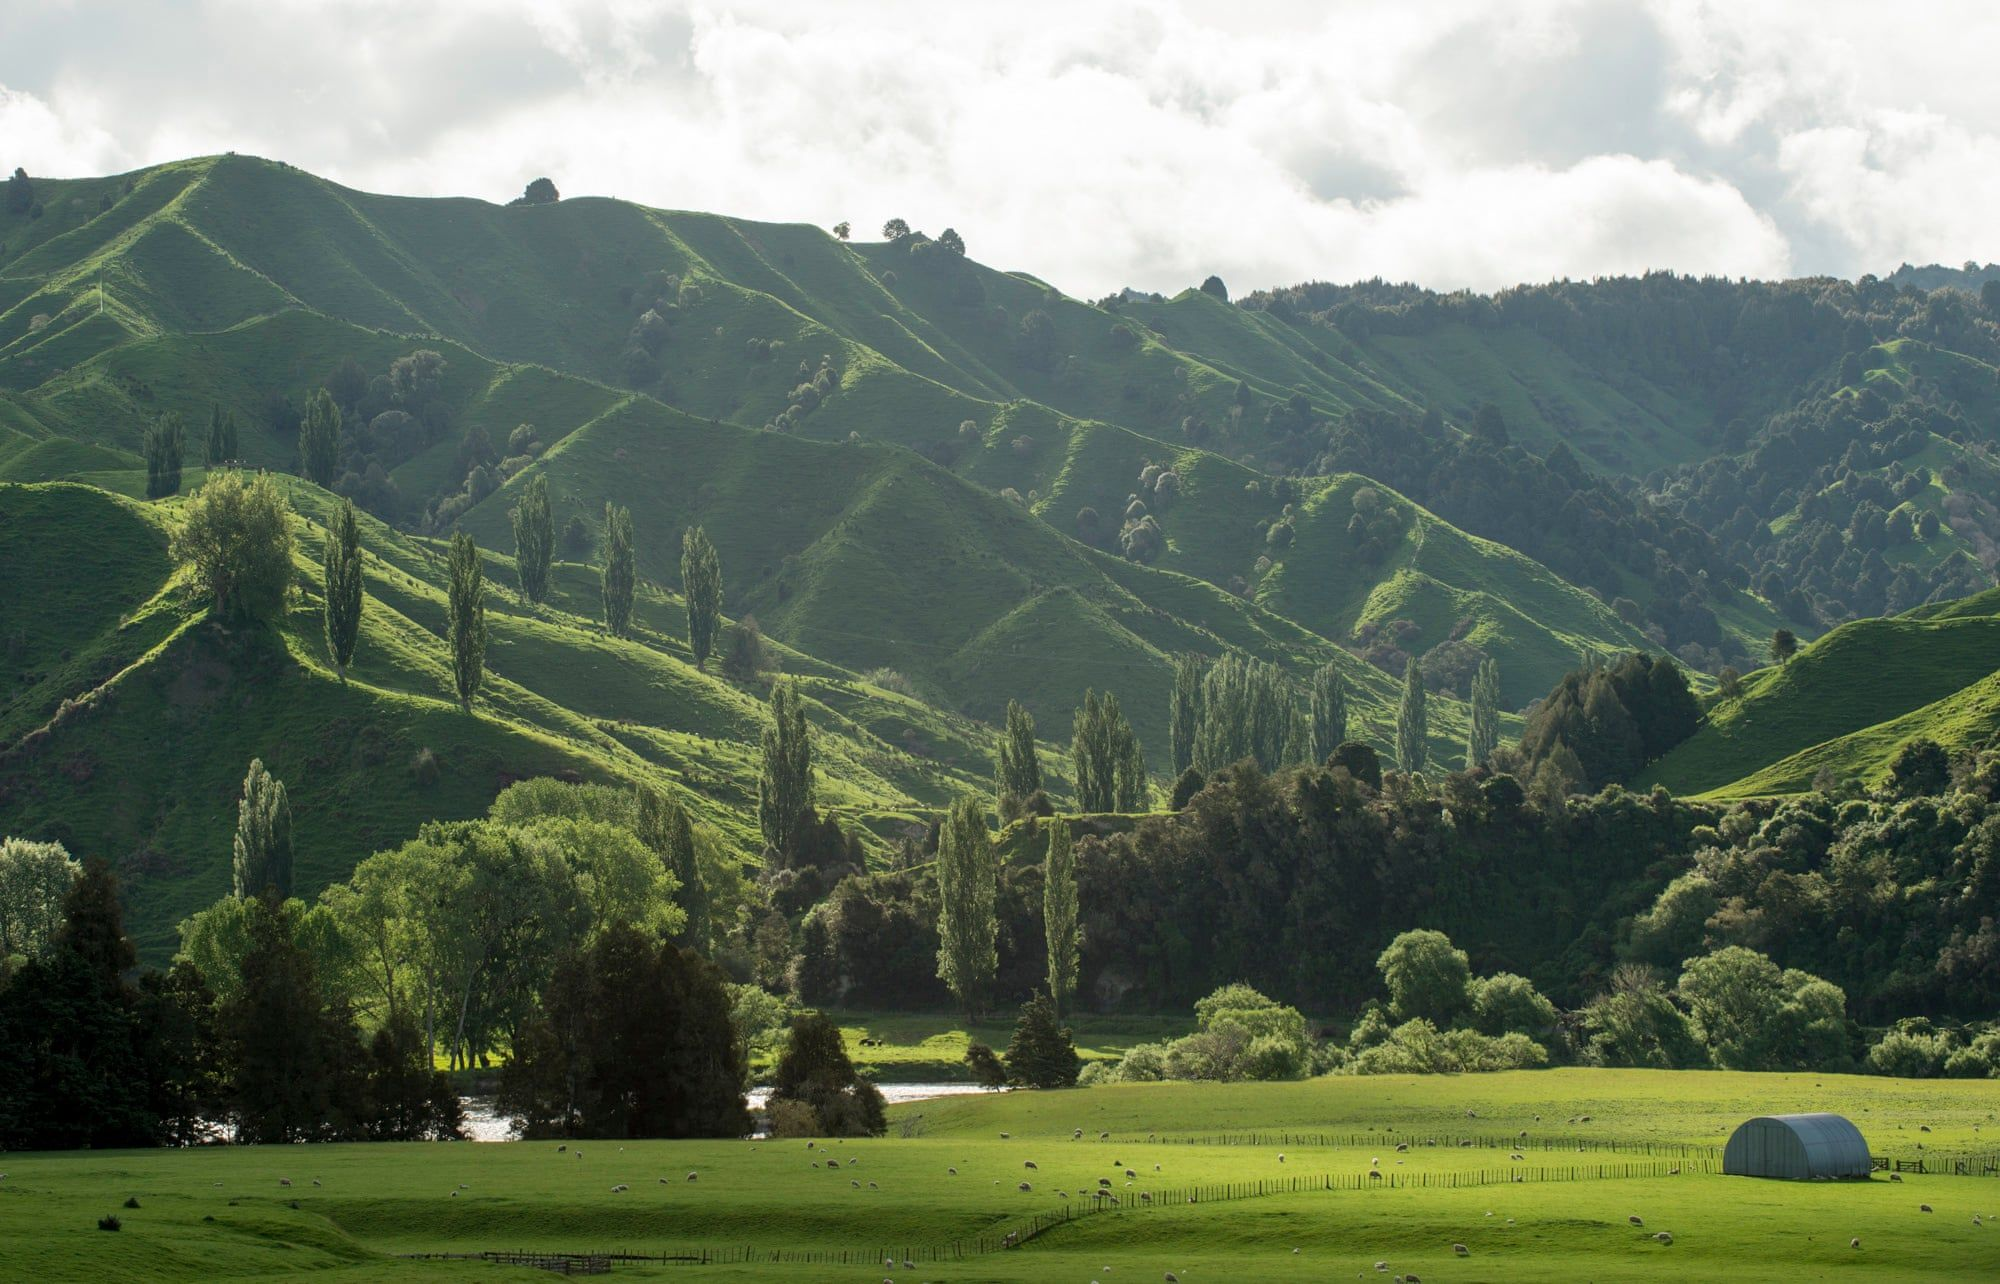 New Zealand S Whanganui River In Pictures River New Zealand River Queen